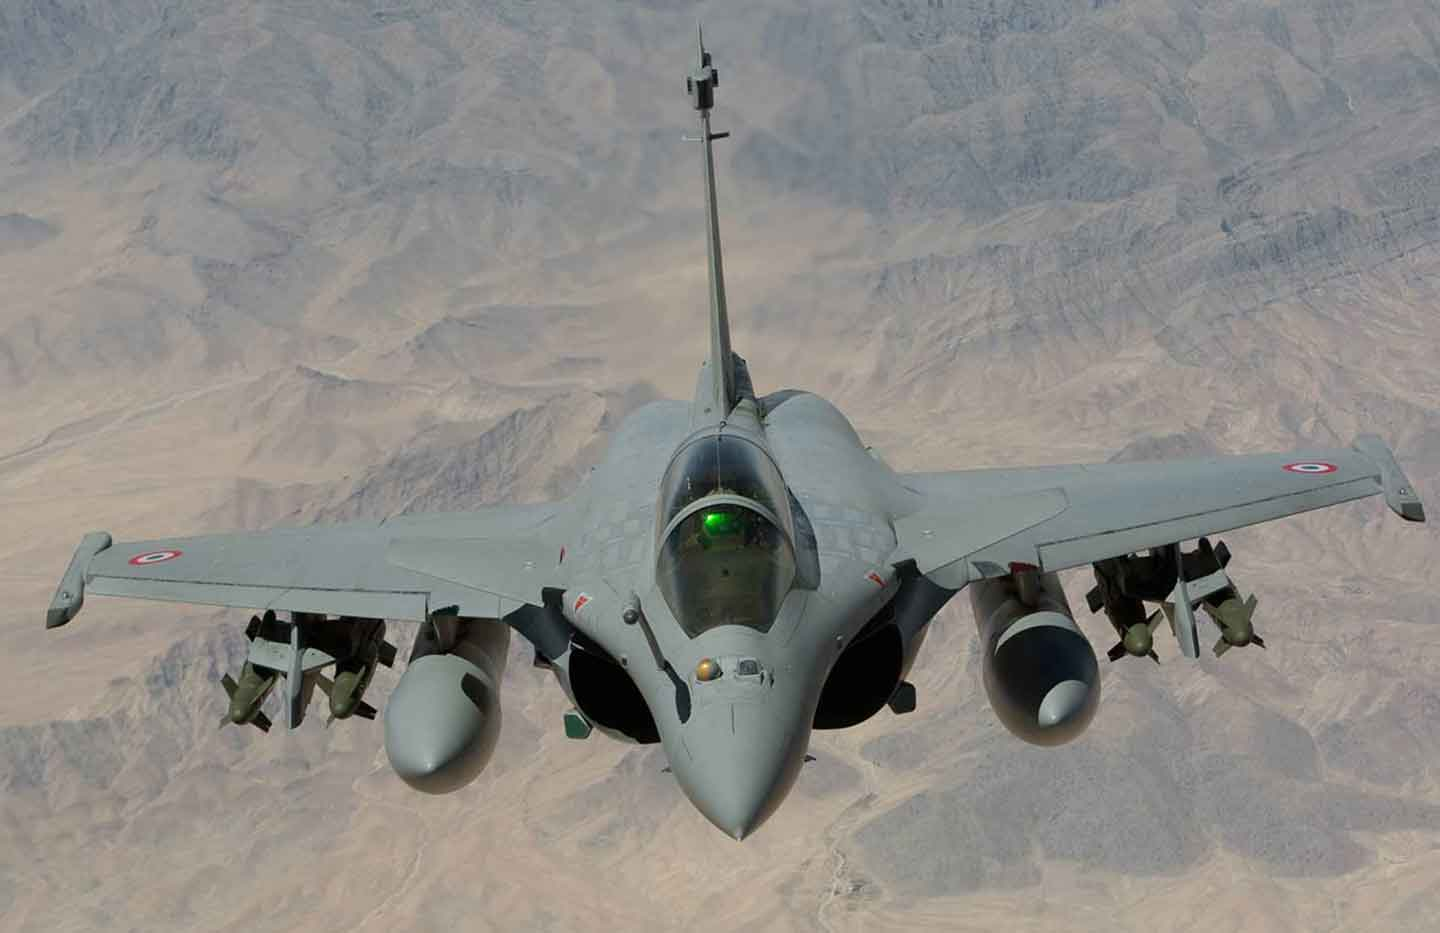 Defence SMEs Holds the Future Self-Sufficient India: Ernst & Young Study